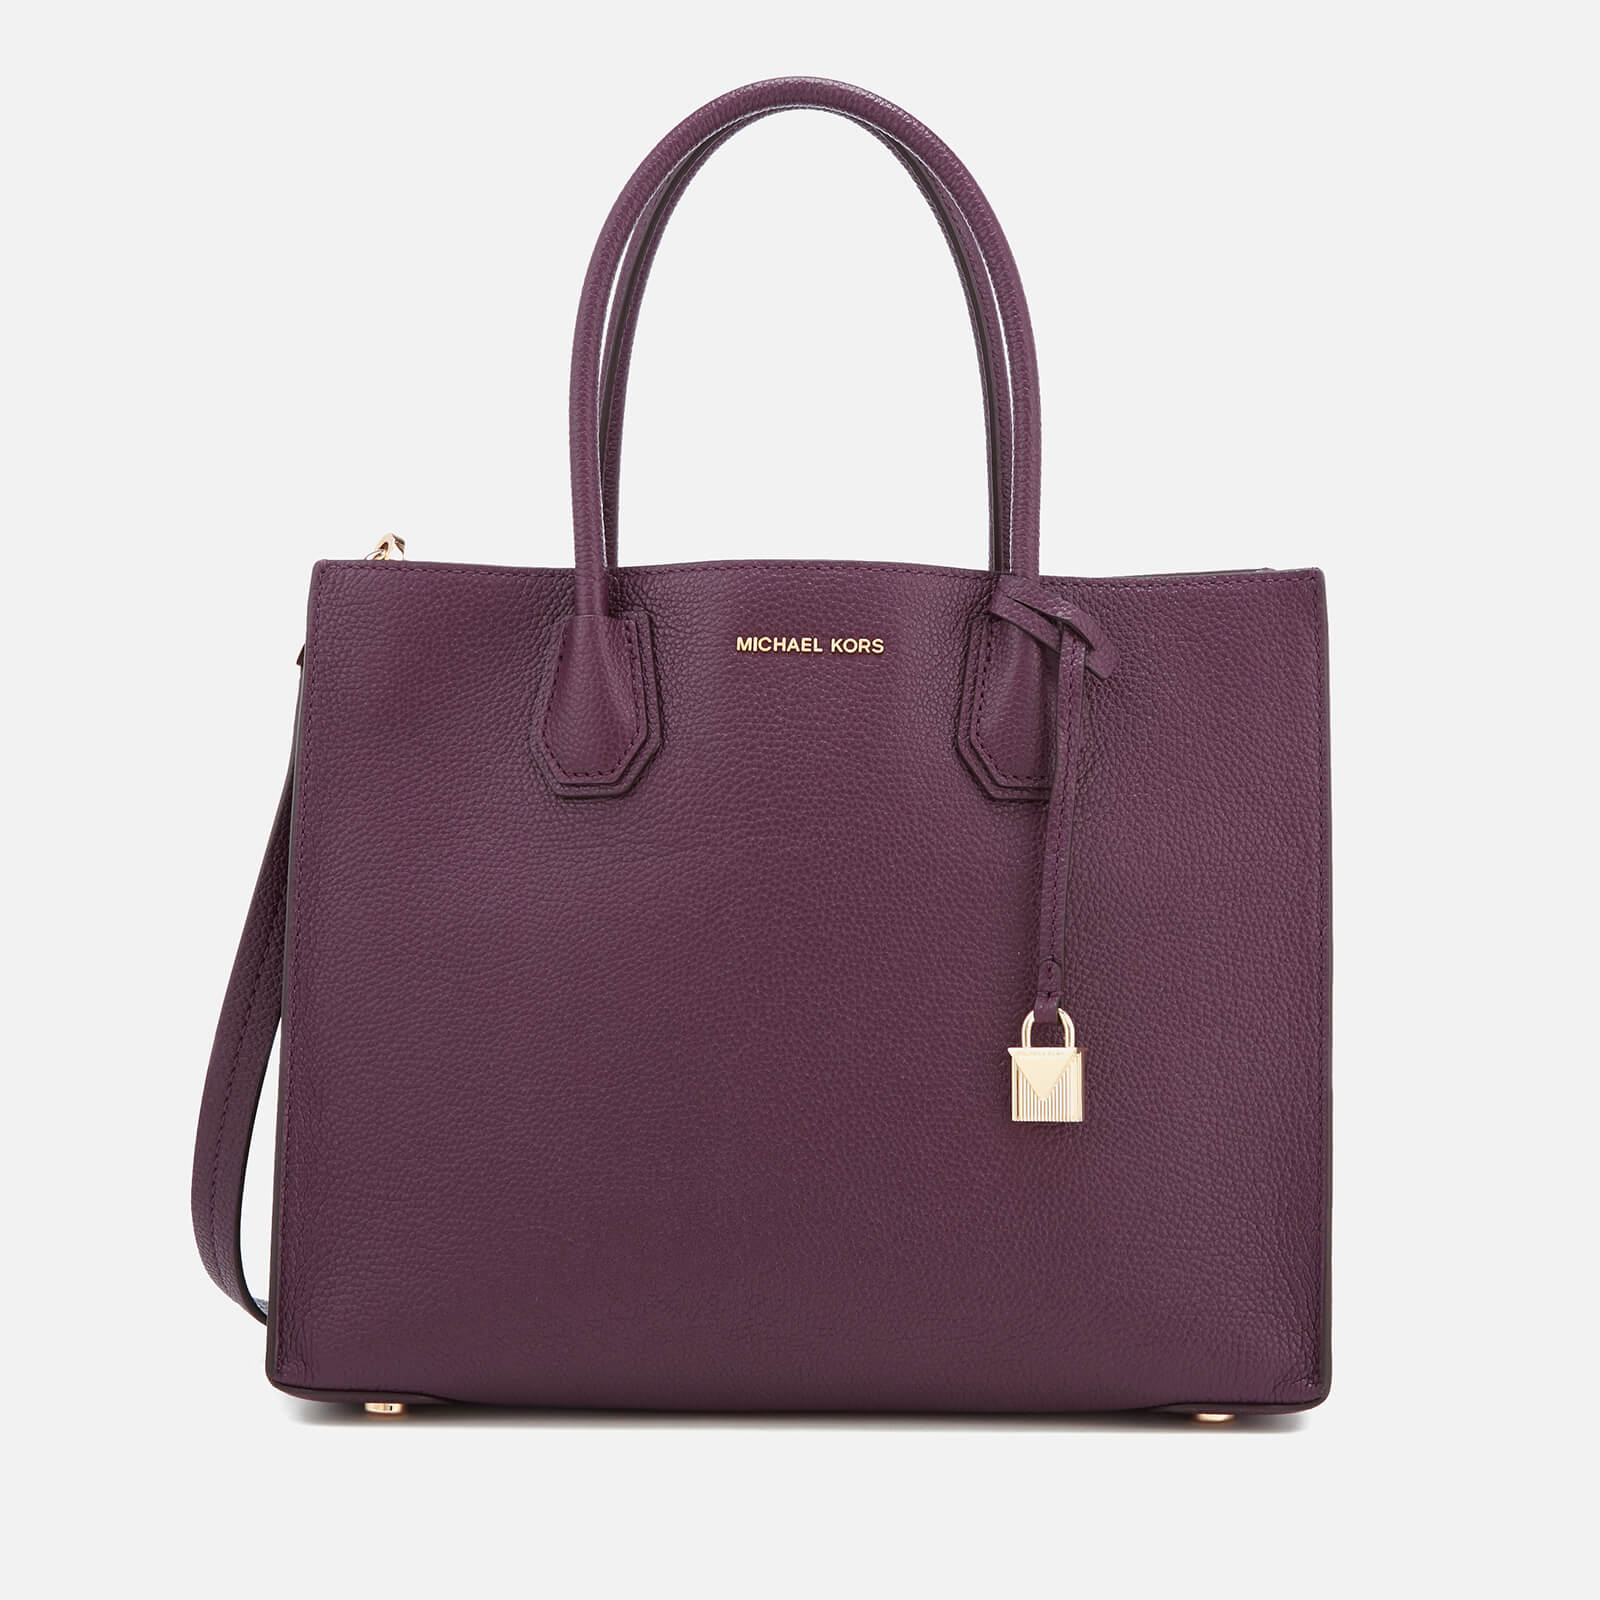 e82a5a735b7f MICHAEL MICHAEL KORS Women's Mercer Large Tote Bag - Damson - Free UK  Delivery over £50